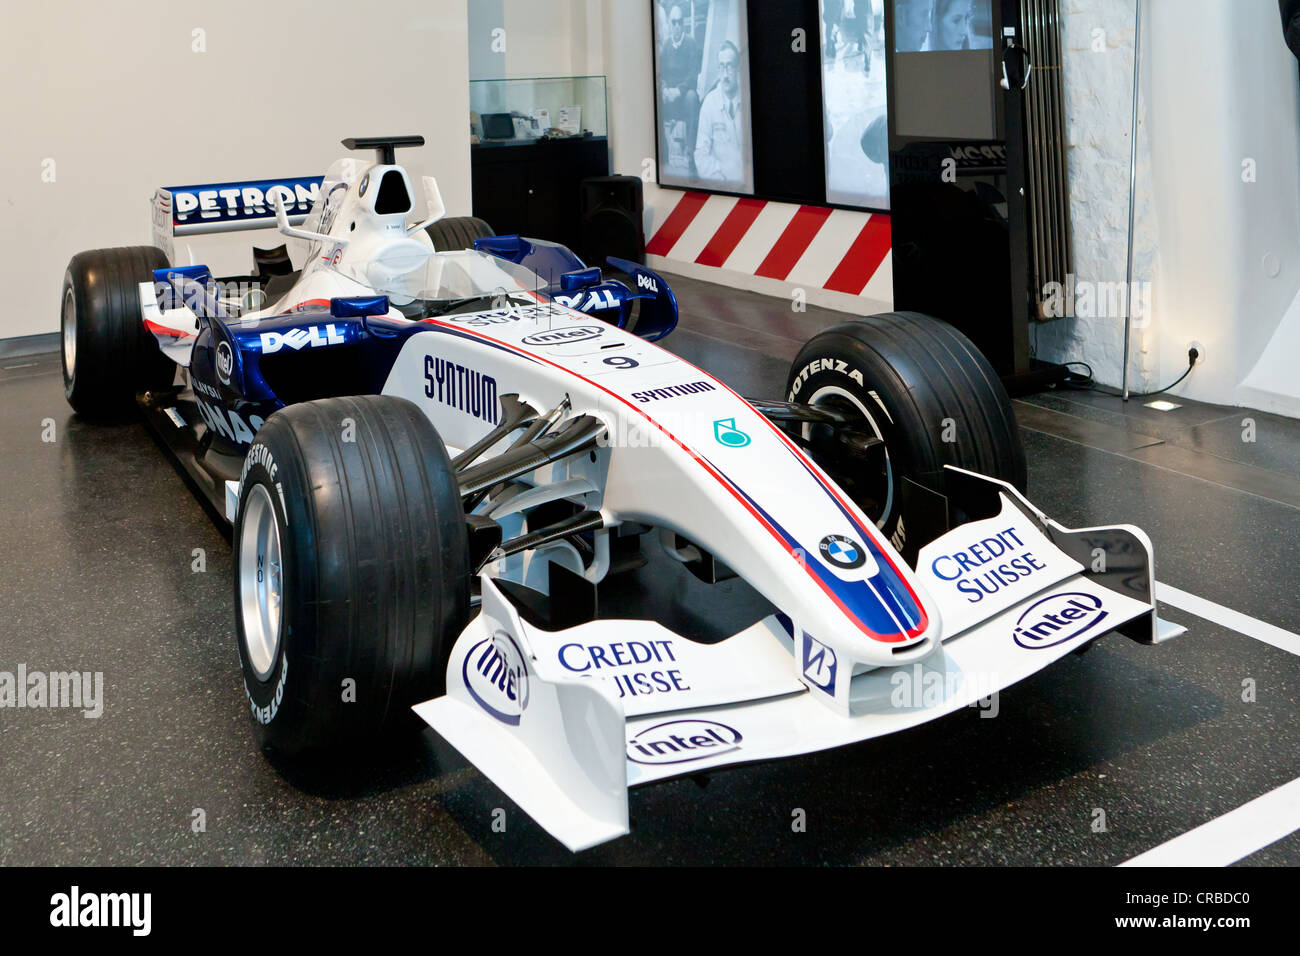 formula car sebastian vettel bmw stock photos formula car sebastian vettel bmw stock images. Black Bedroom Furniture Sets. Home Design Ideas